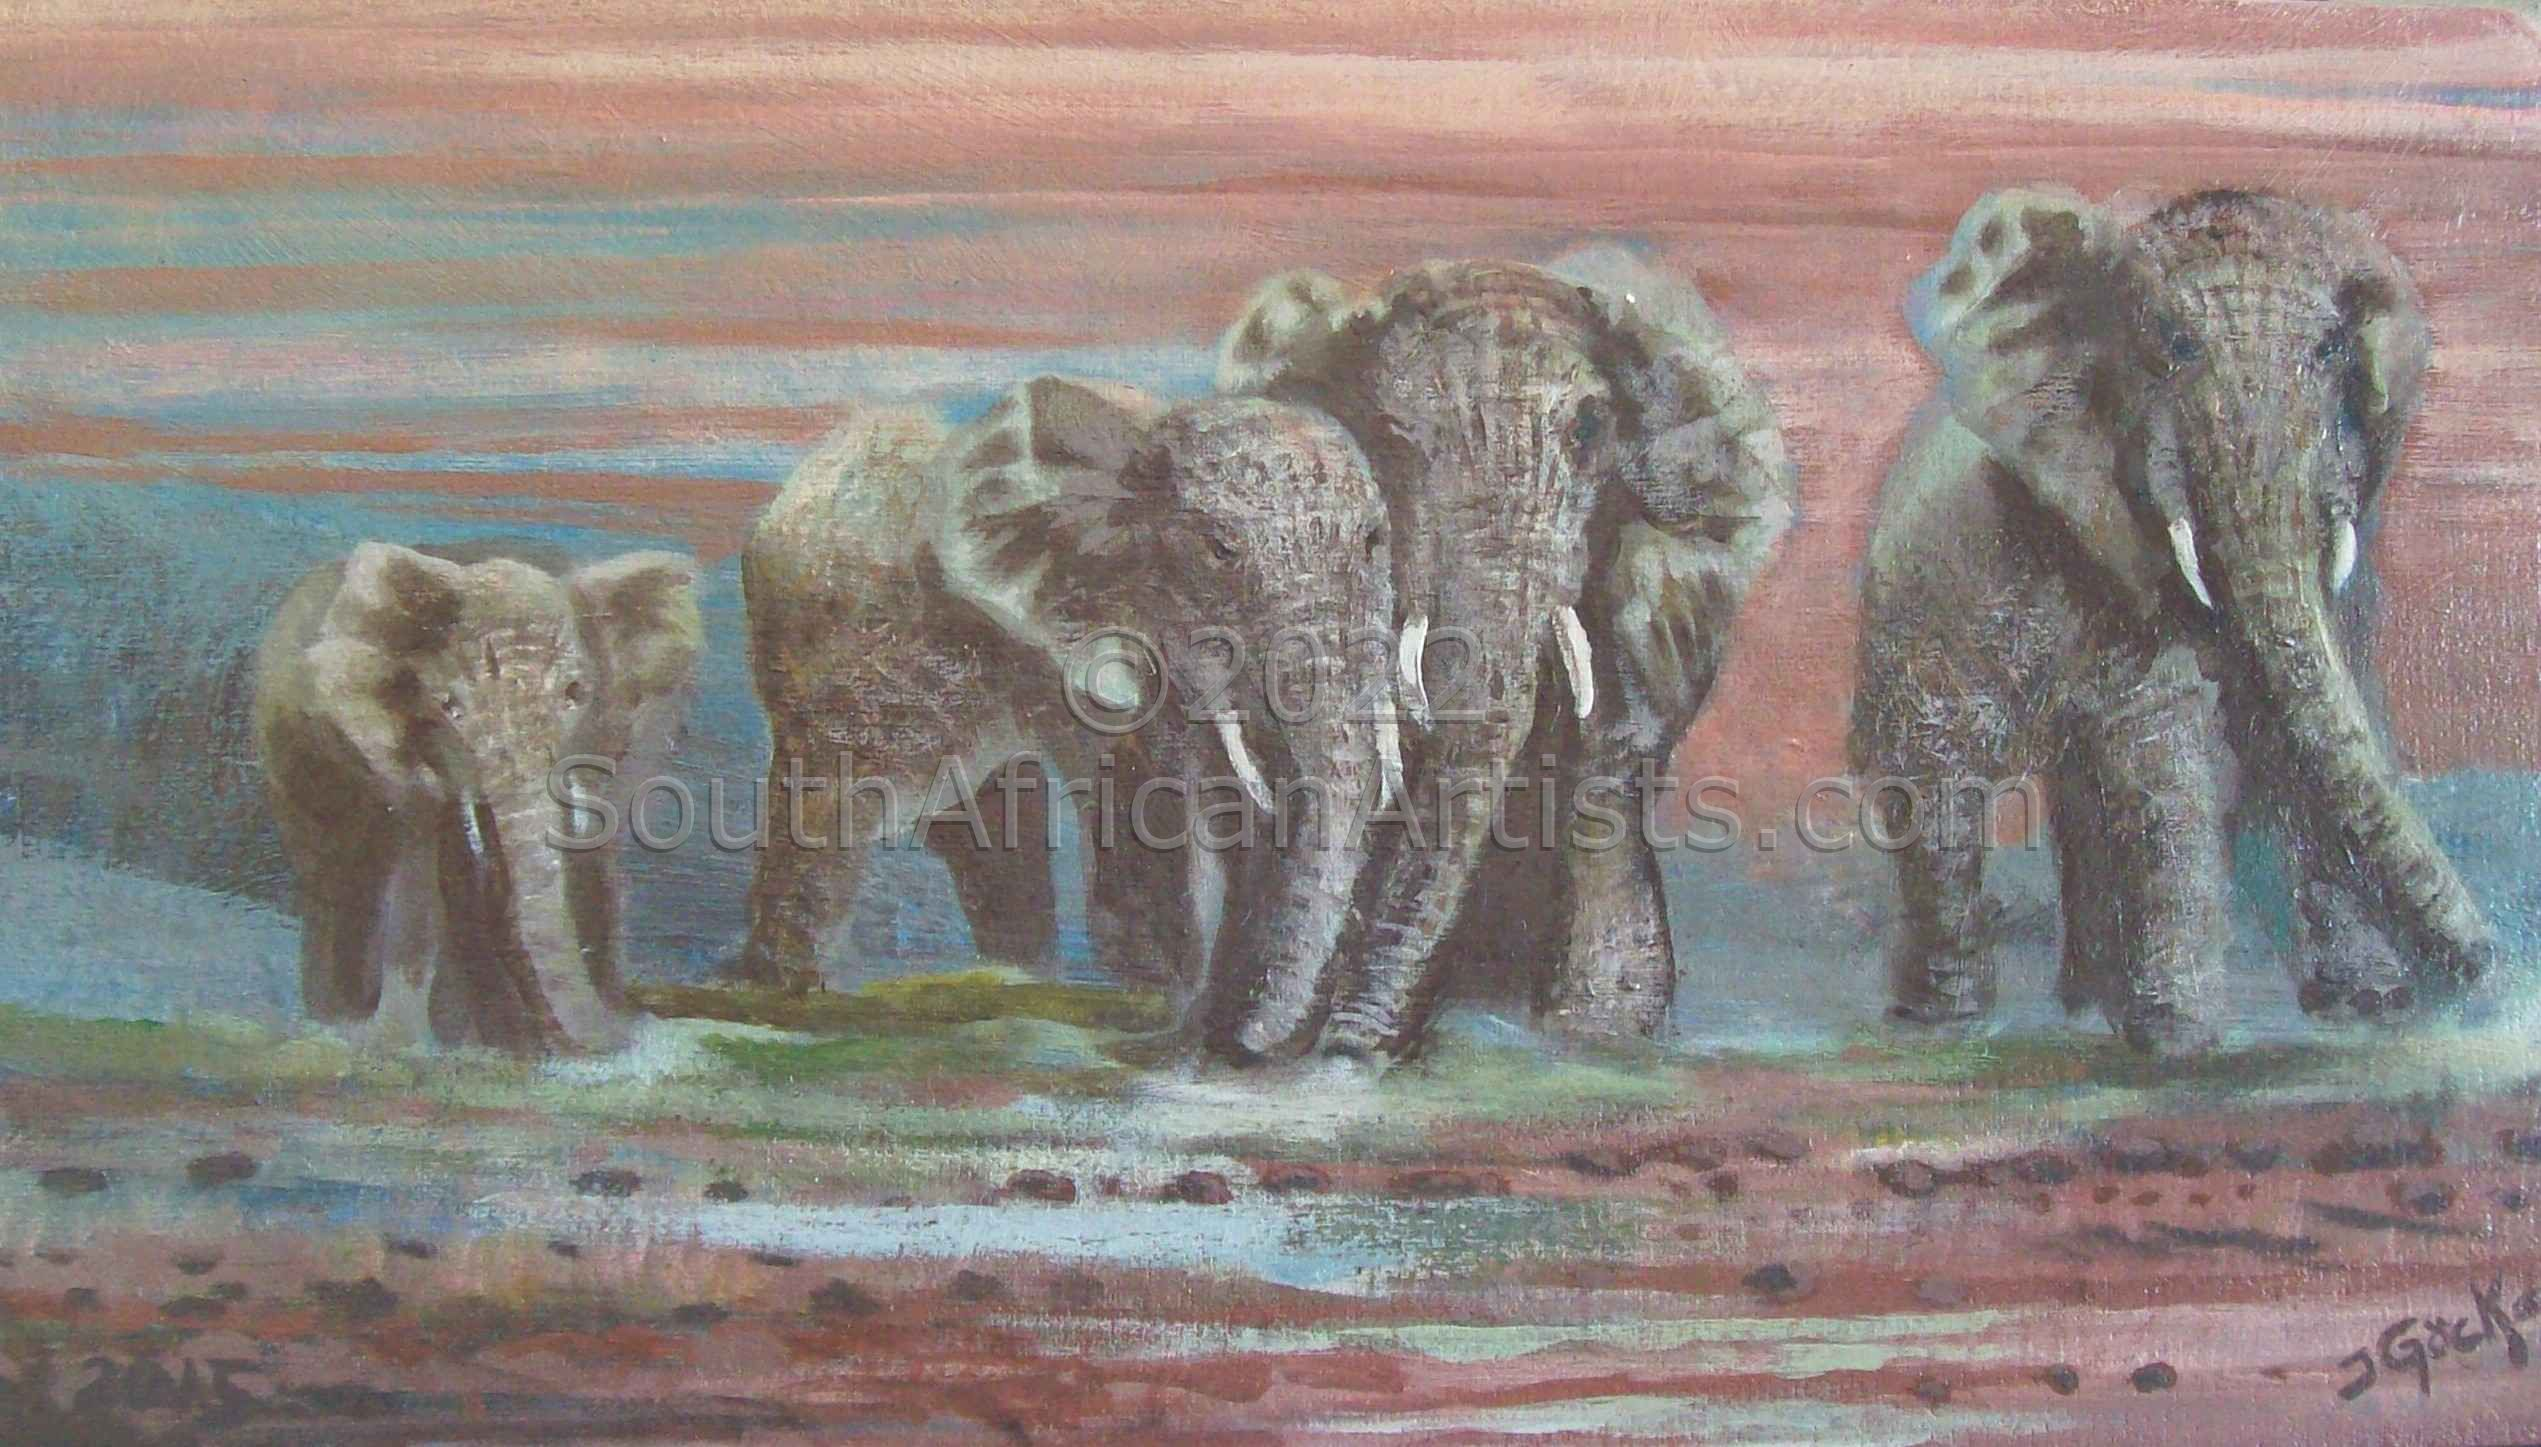 The Dusty Elephants